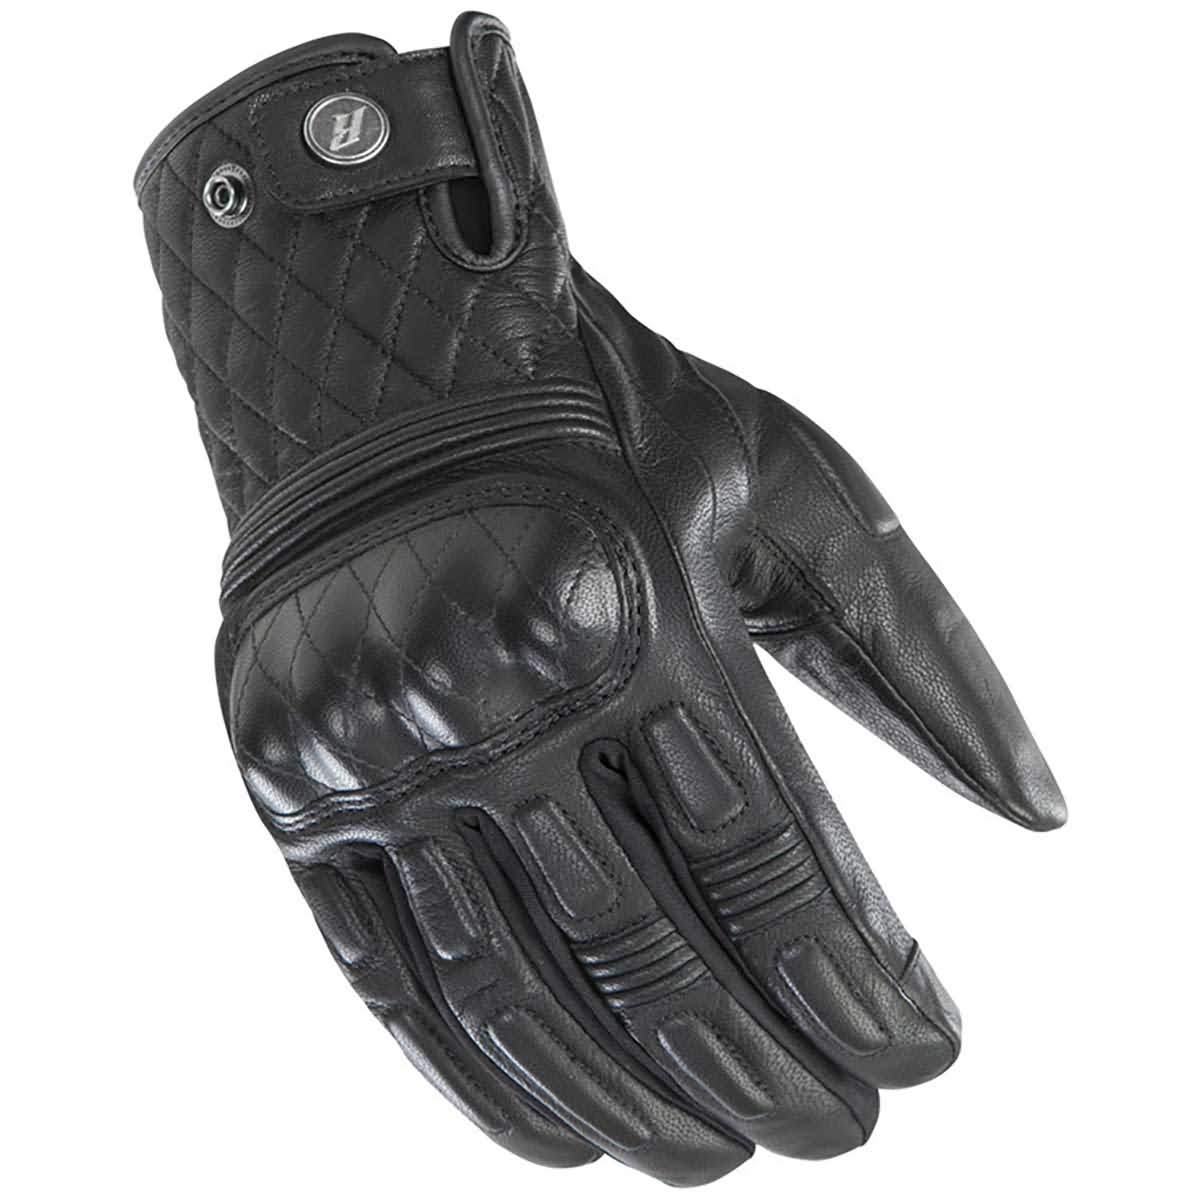 Joe Rocket Diamondback Men's Street Gloves-1960